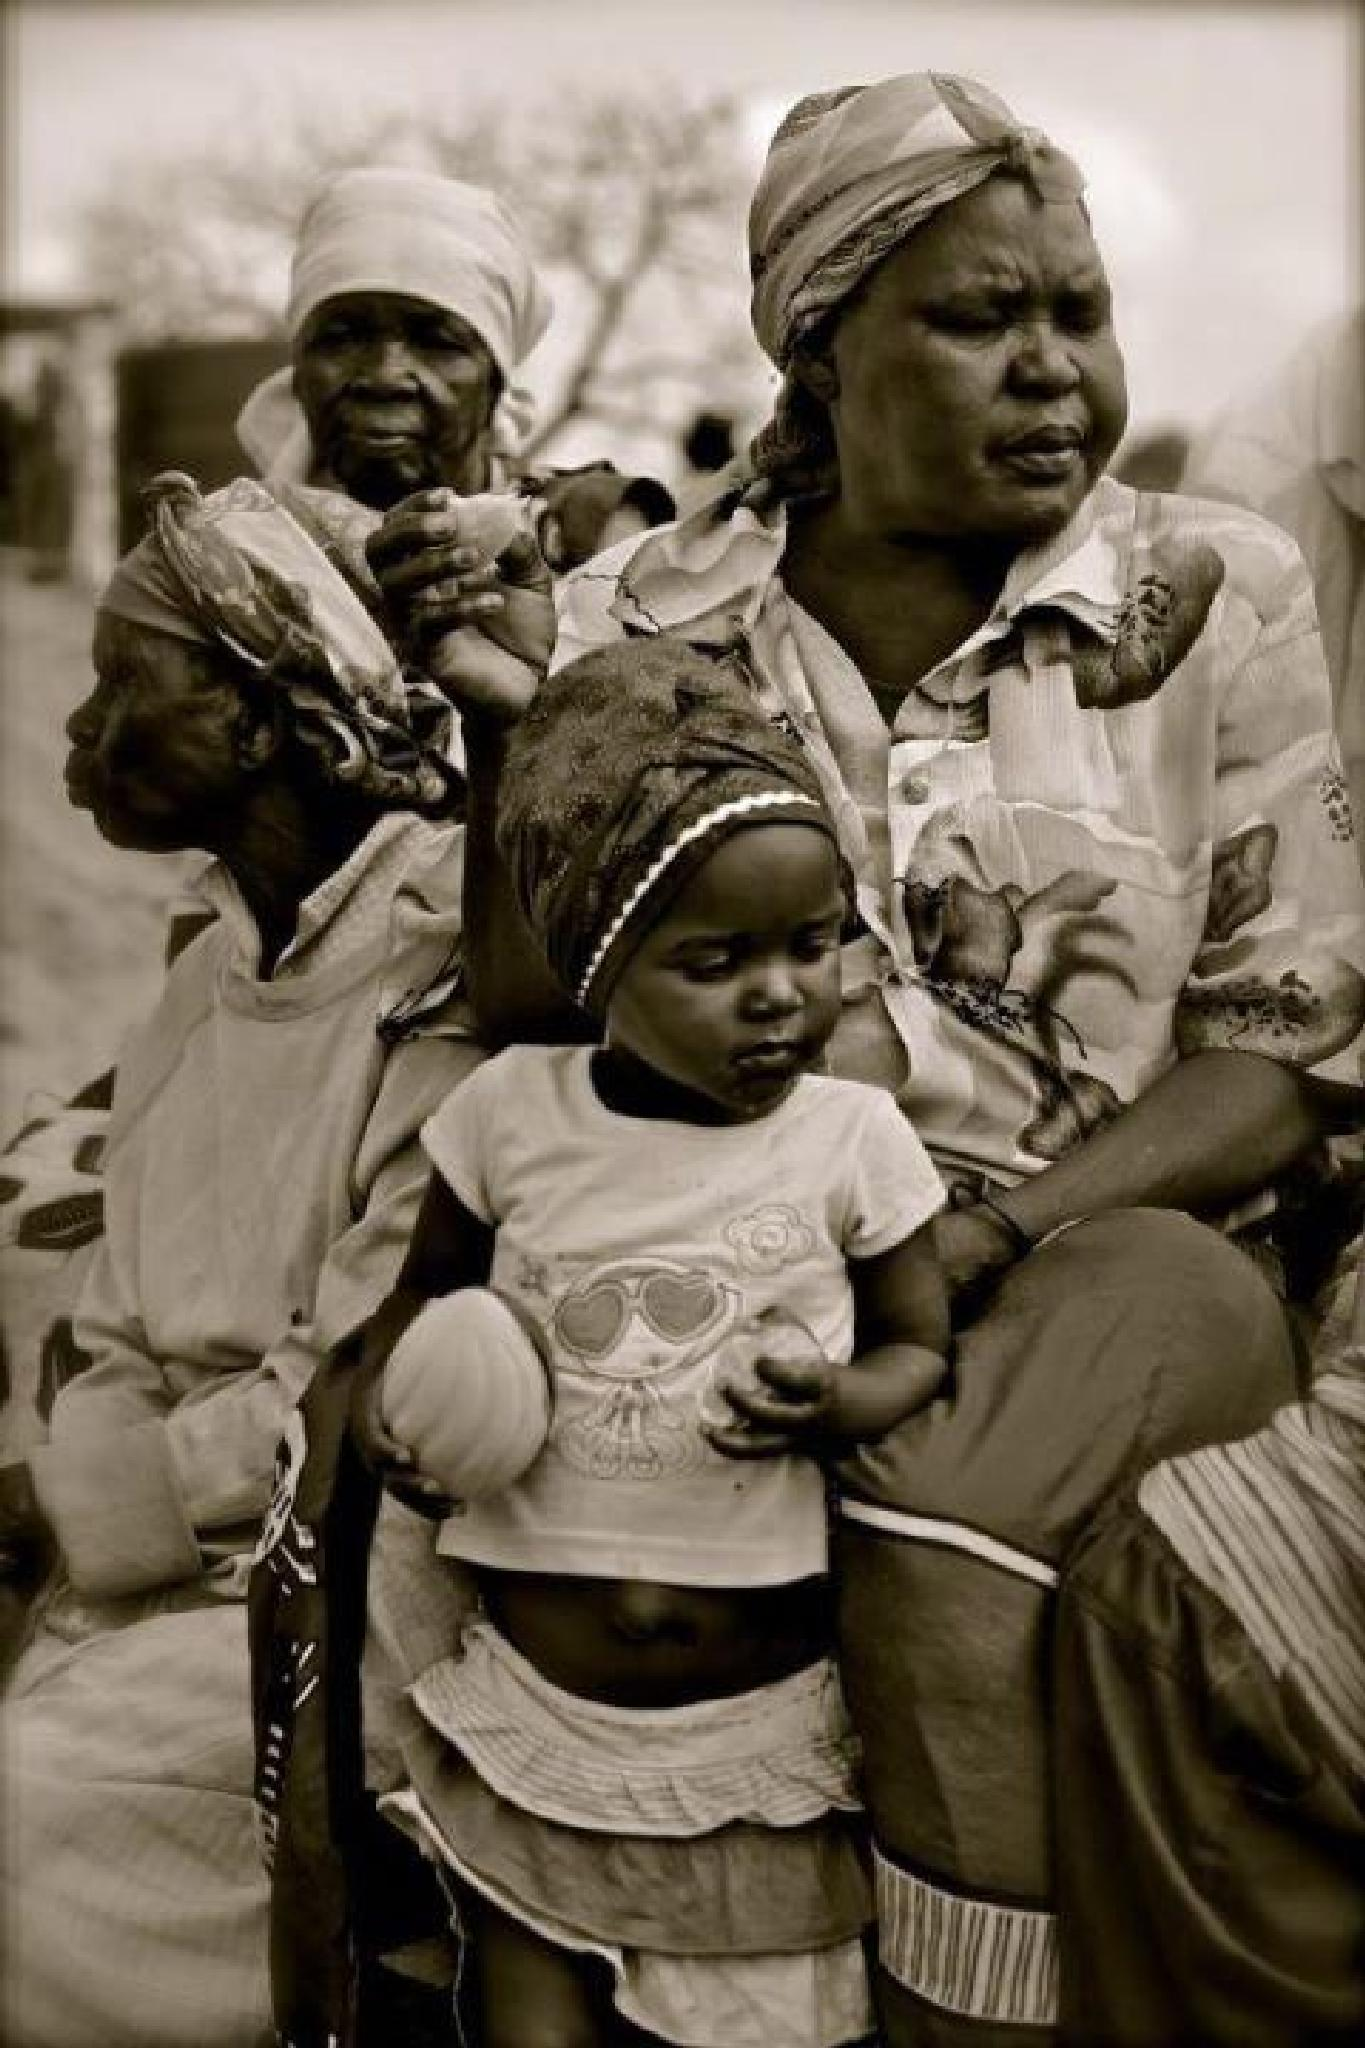 A Girls Life in Swaziland by Mark Jacobs